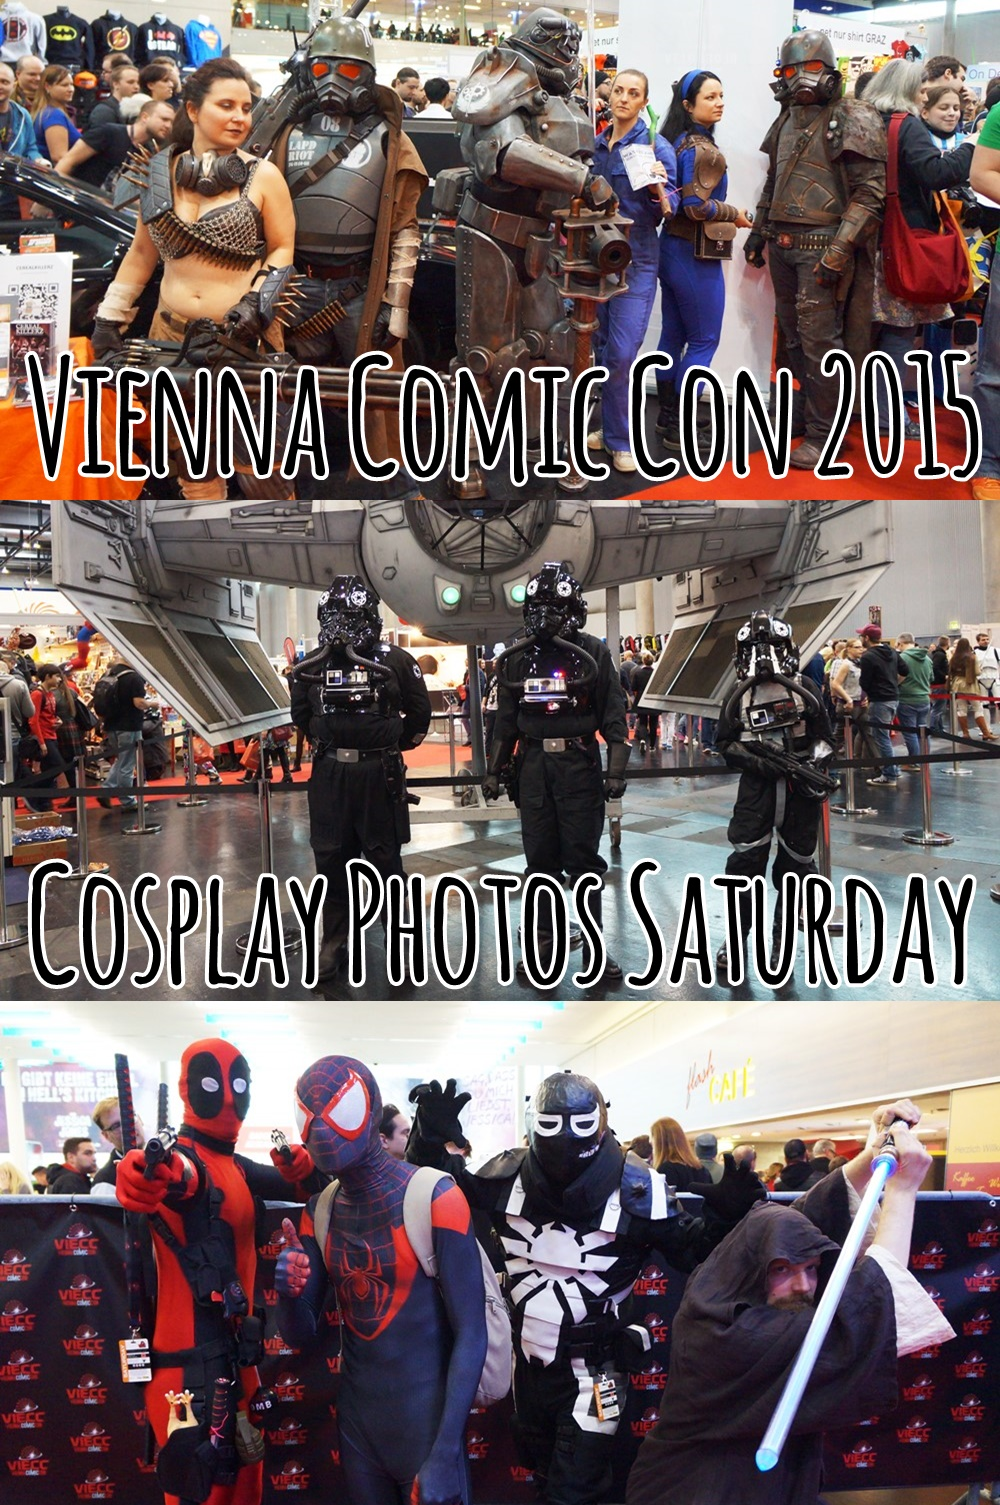 Vienna Comic Con - Cosplay Photos Saturday